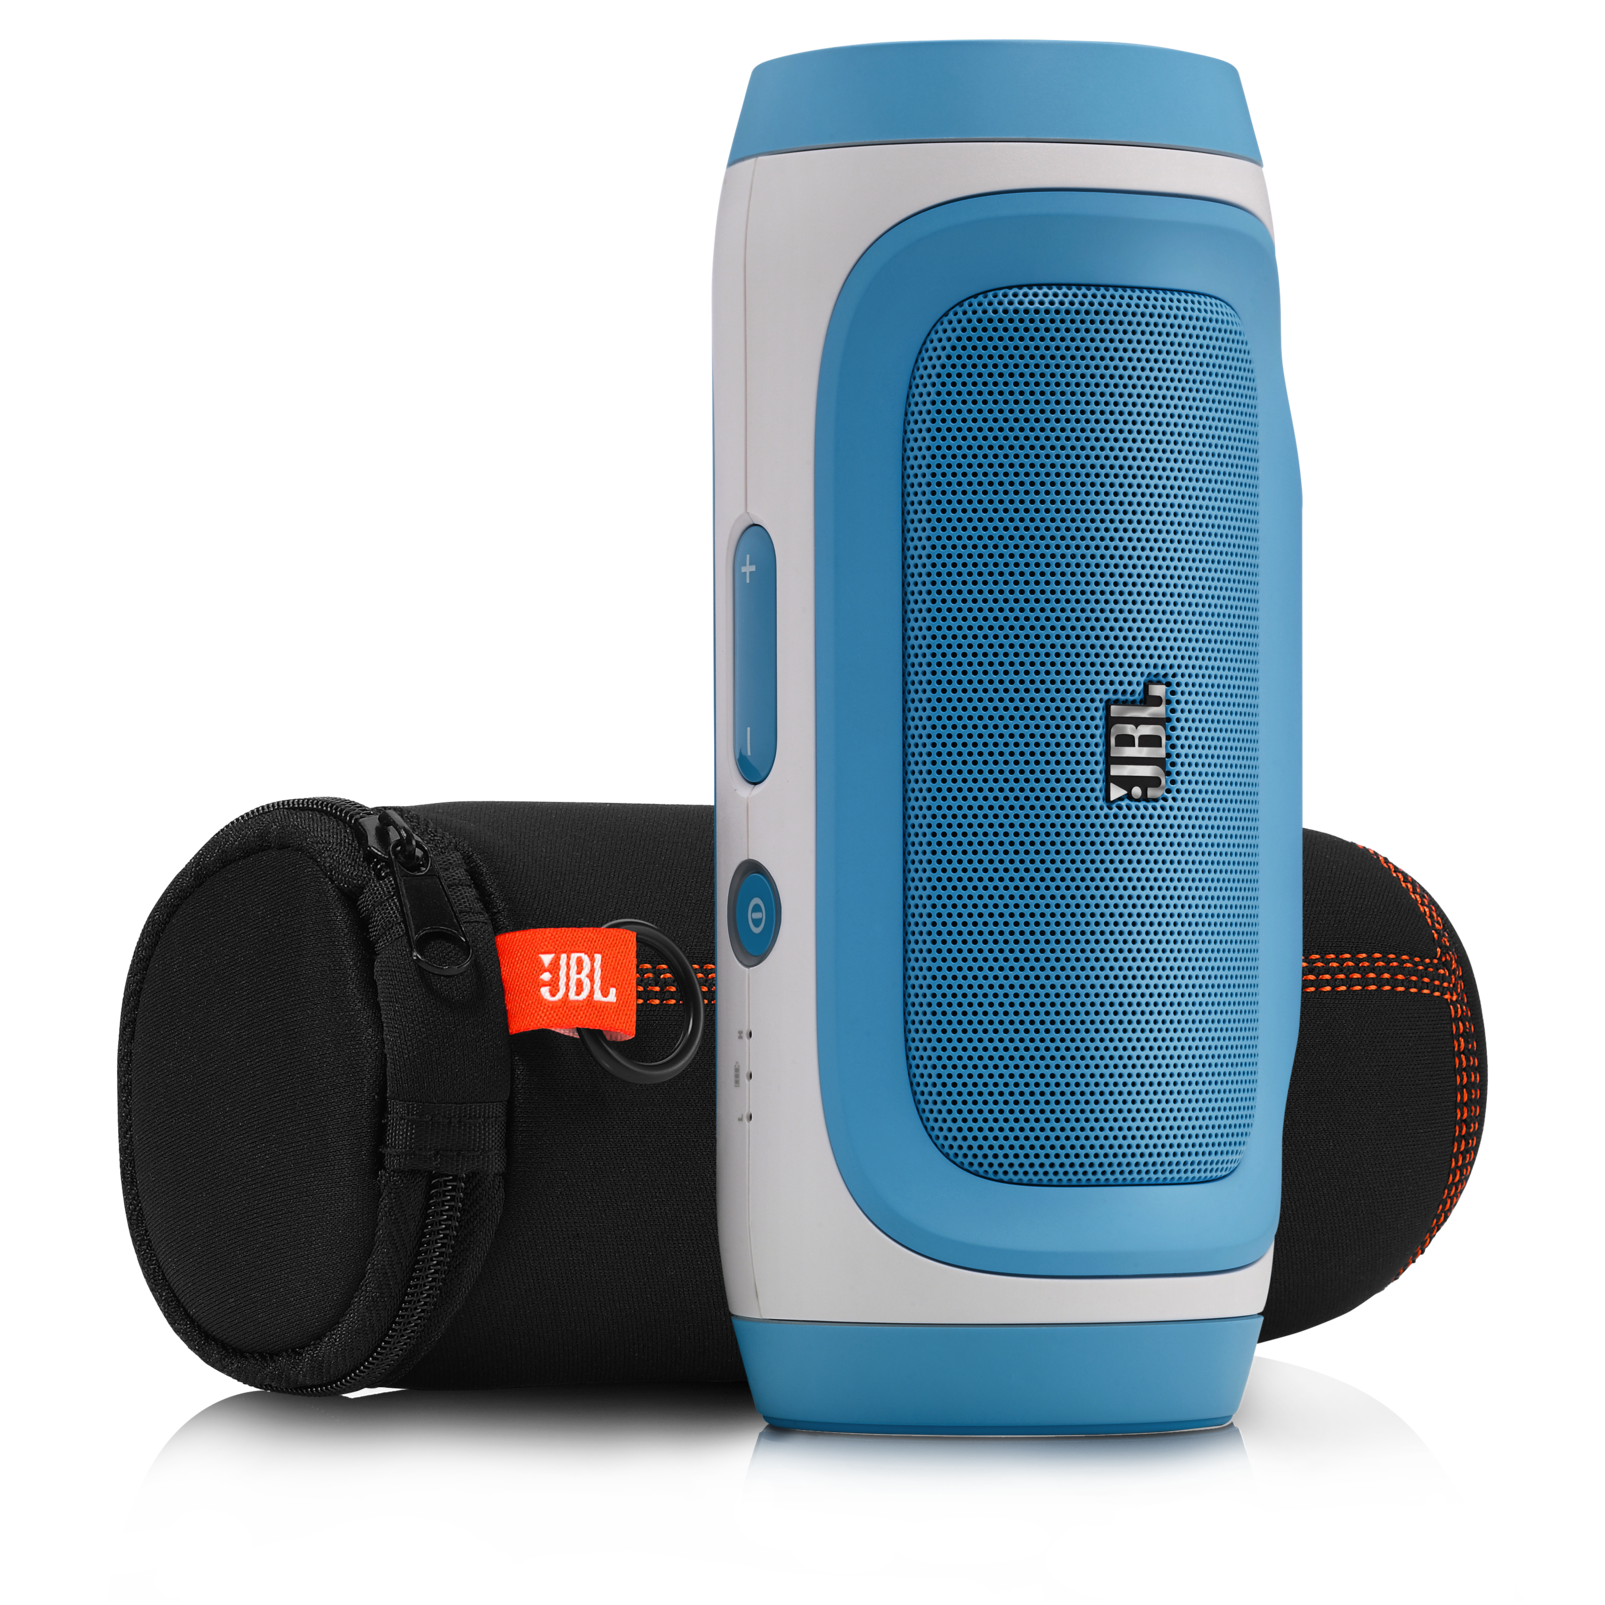 JBL Charge - Blue-Z - Portable Wireless Bluetooth Speaker with USB Charger - Detailshot 2